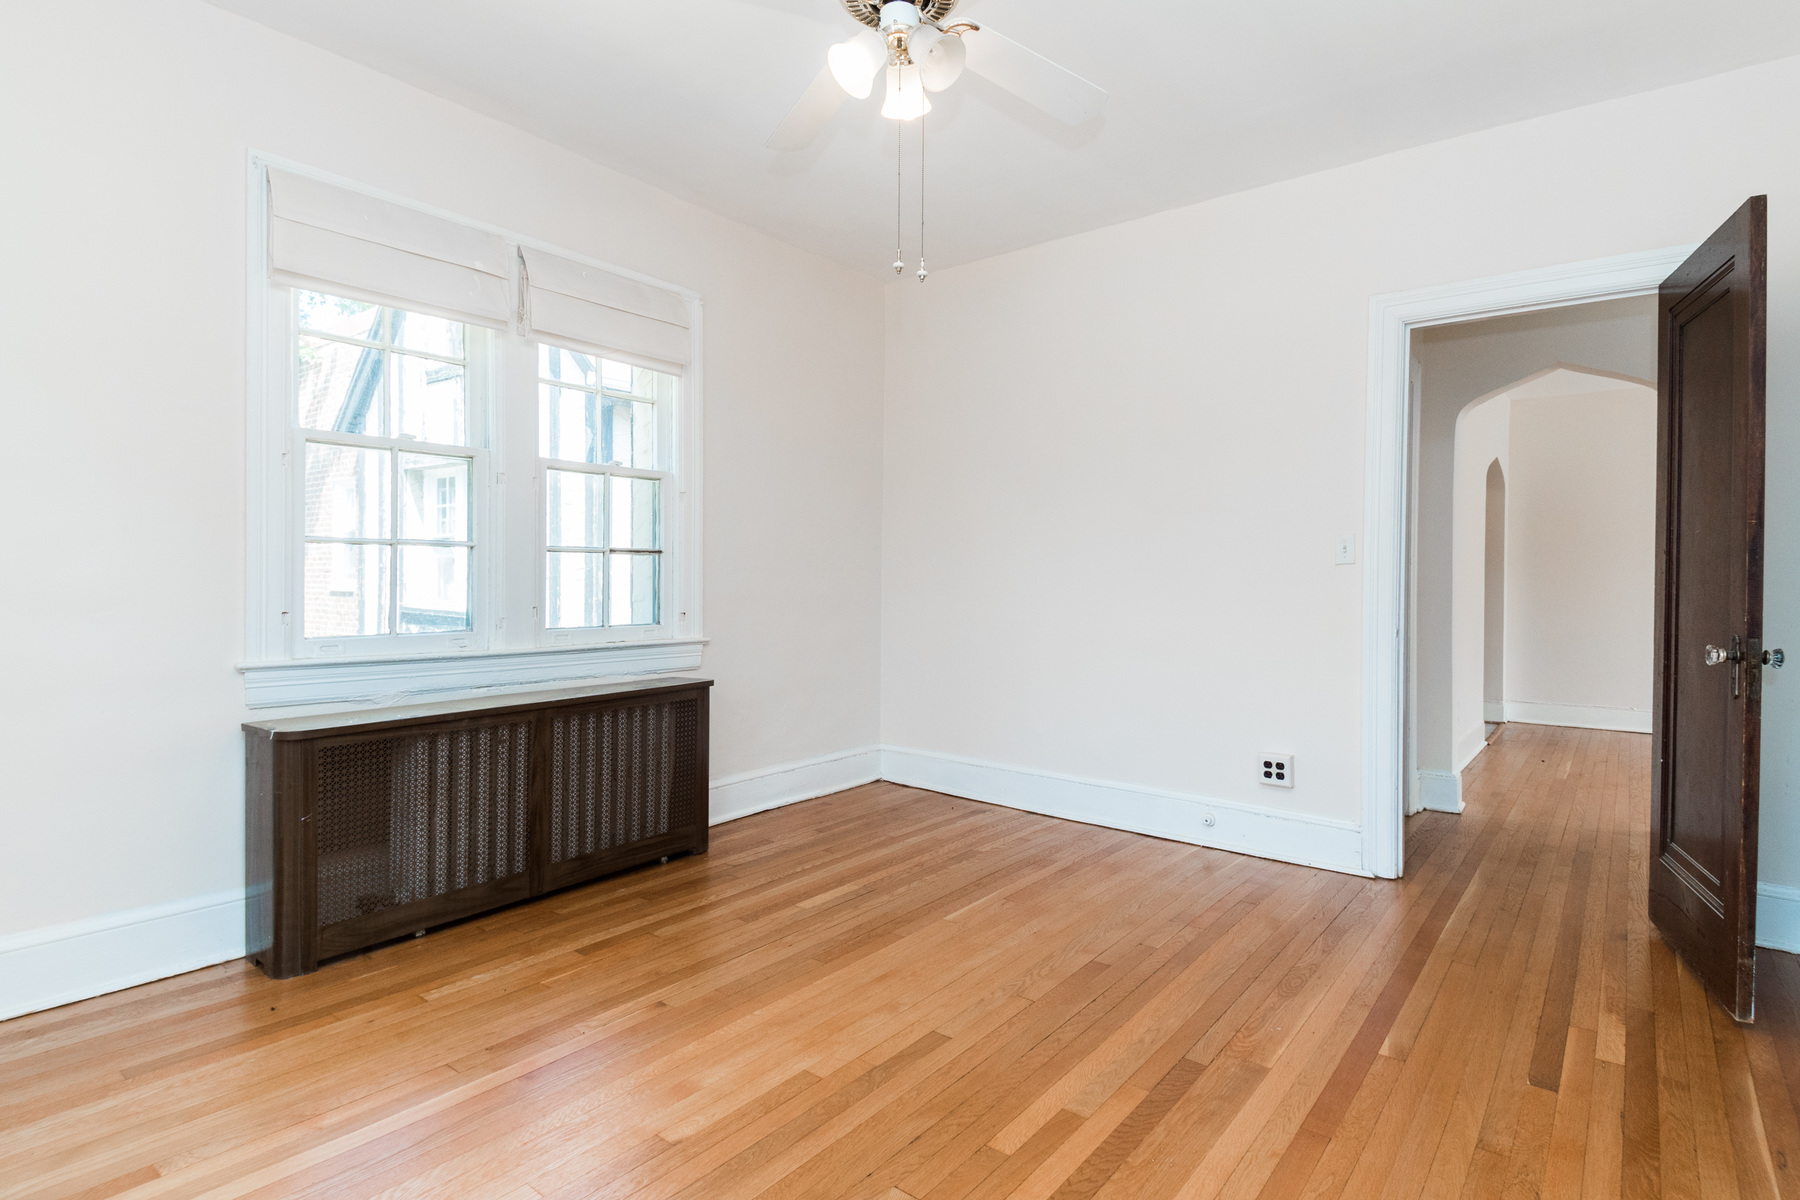 Additional photo for property listing at 250 Farragut Street Nw 203, Washington  Washington, Distretto Di Columbia 20011 Stati Uniti